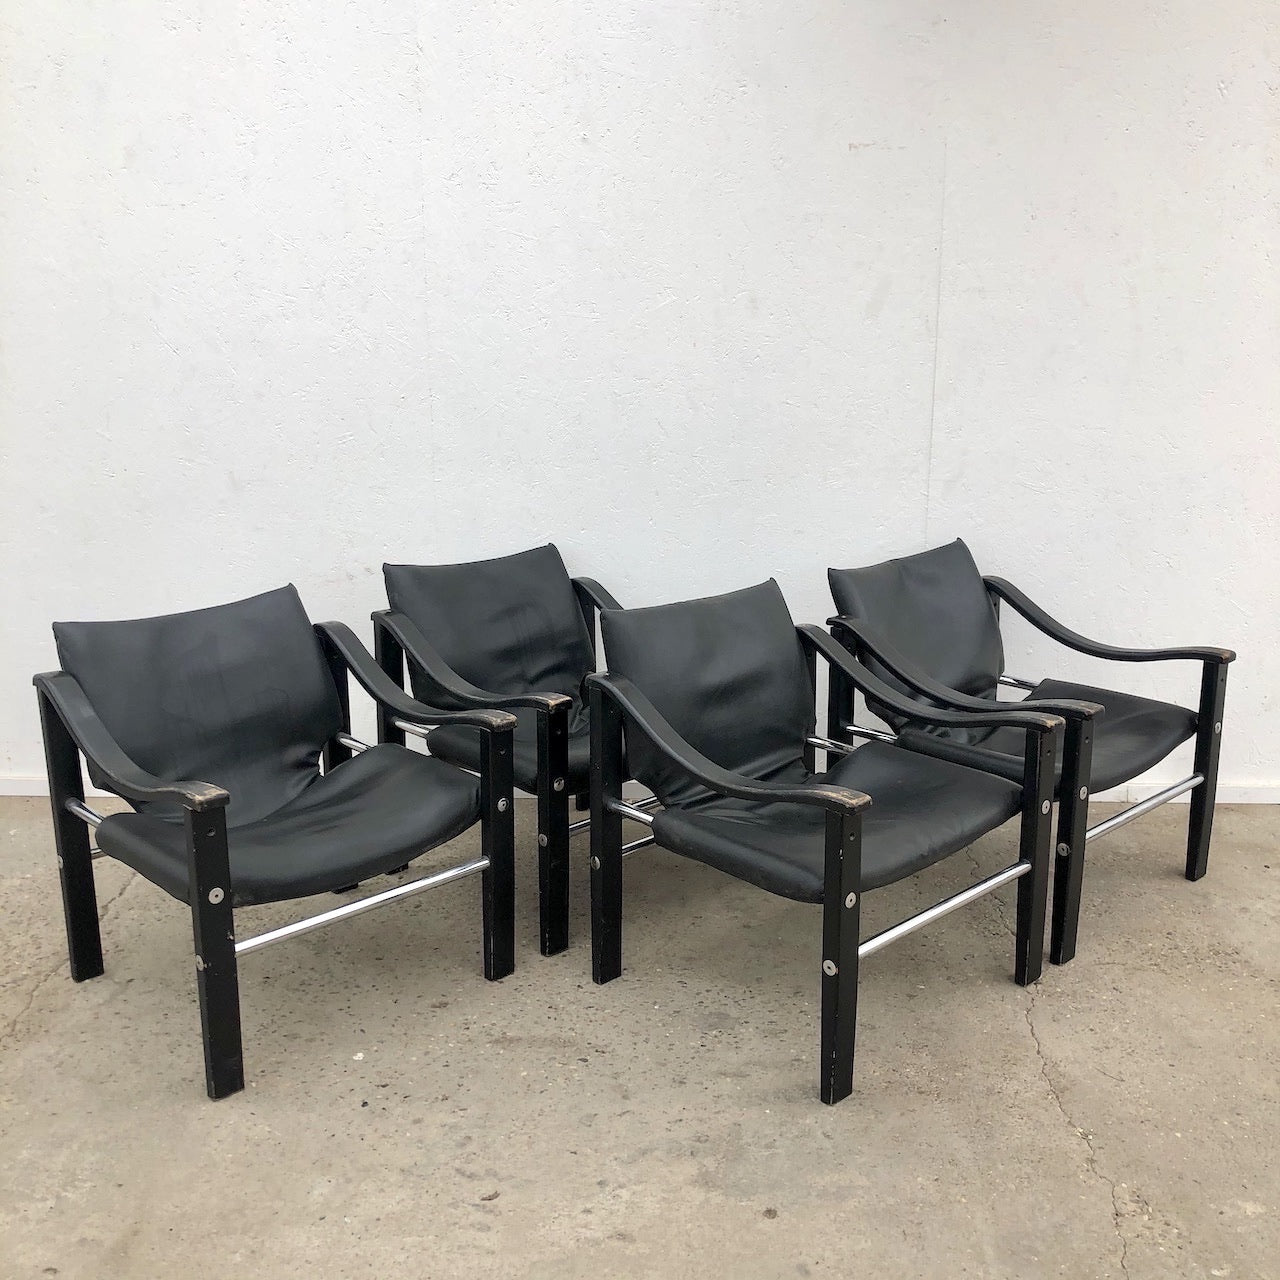 Vintage Arkana safari chairs